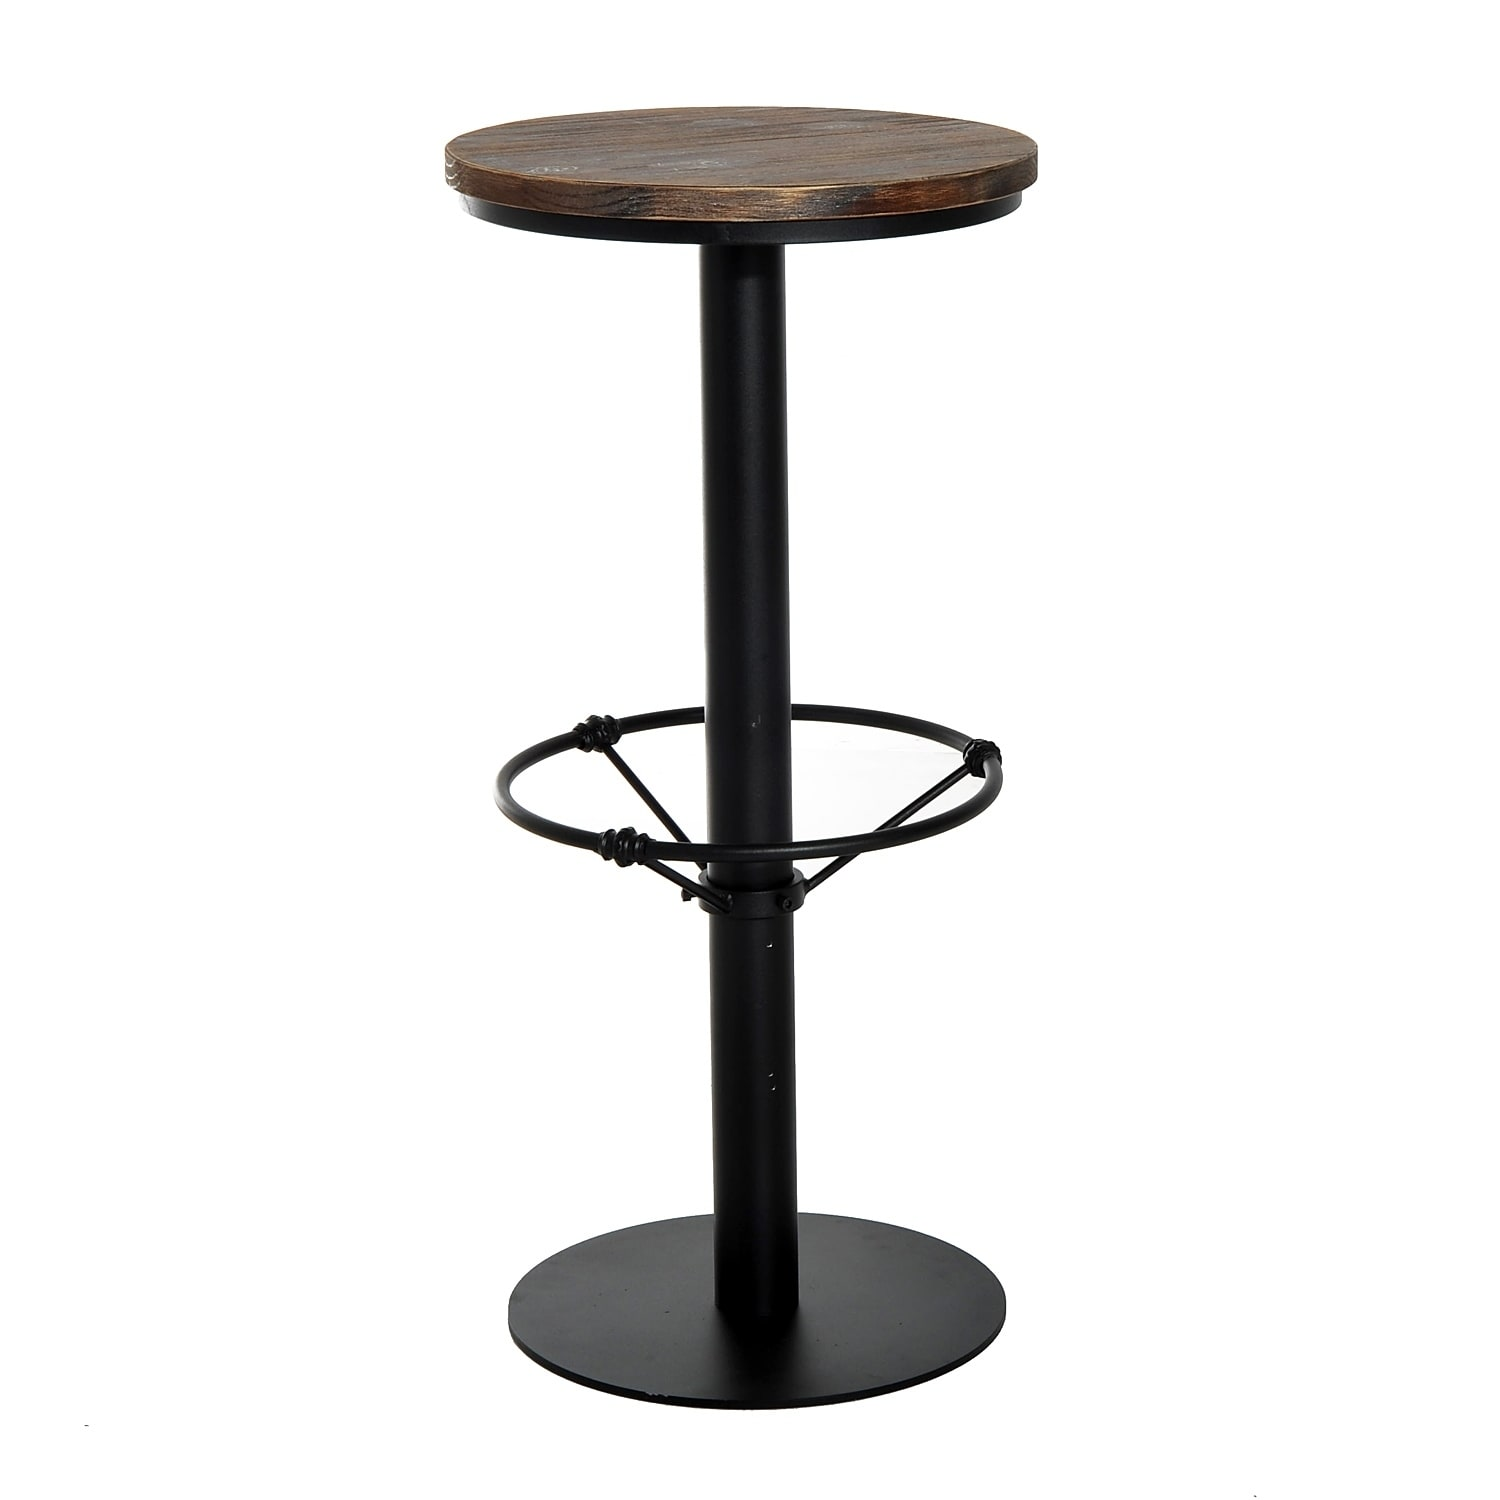 Prime Homcom Round Industrial Metal Wood Top Bar Height Pub Table Machost Co Dining Chair Design Ideas Machostcouk